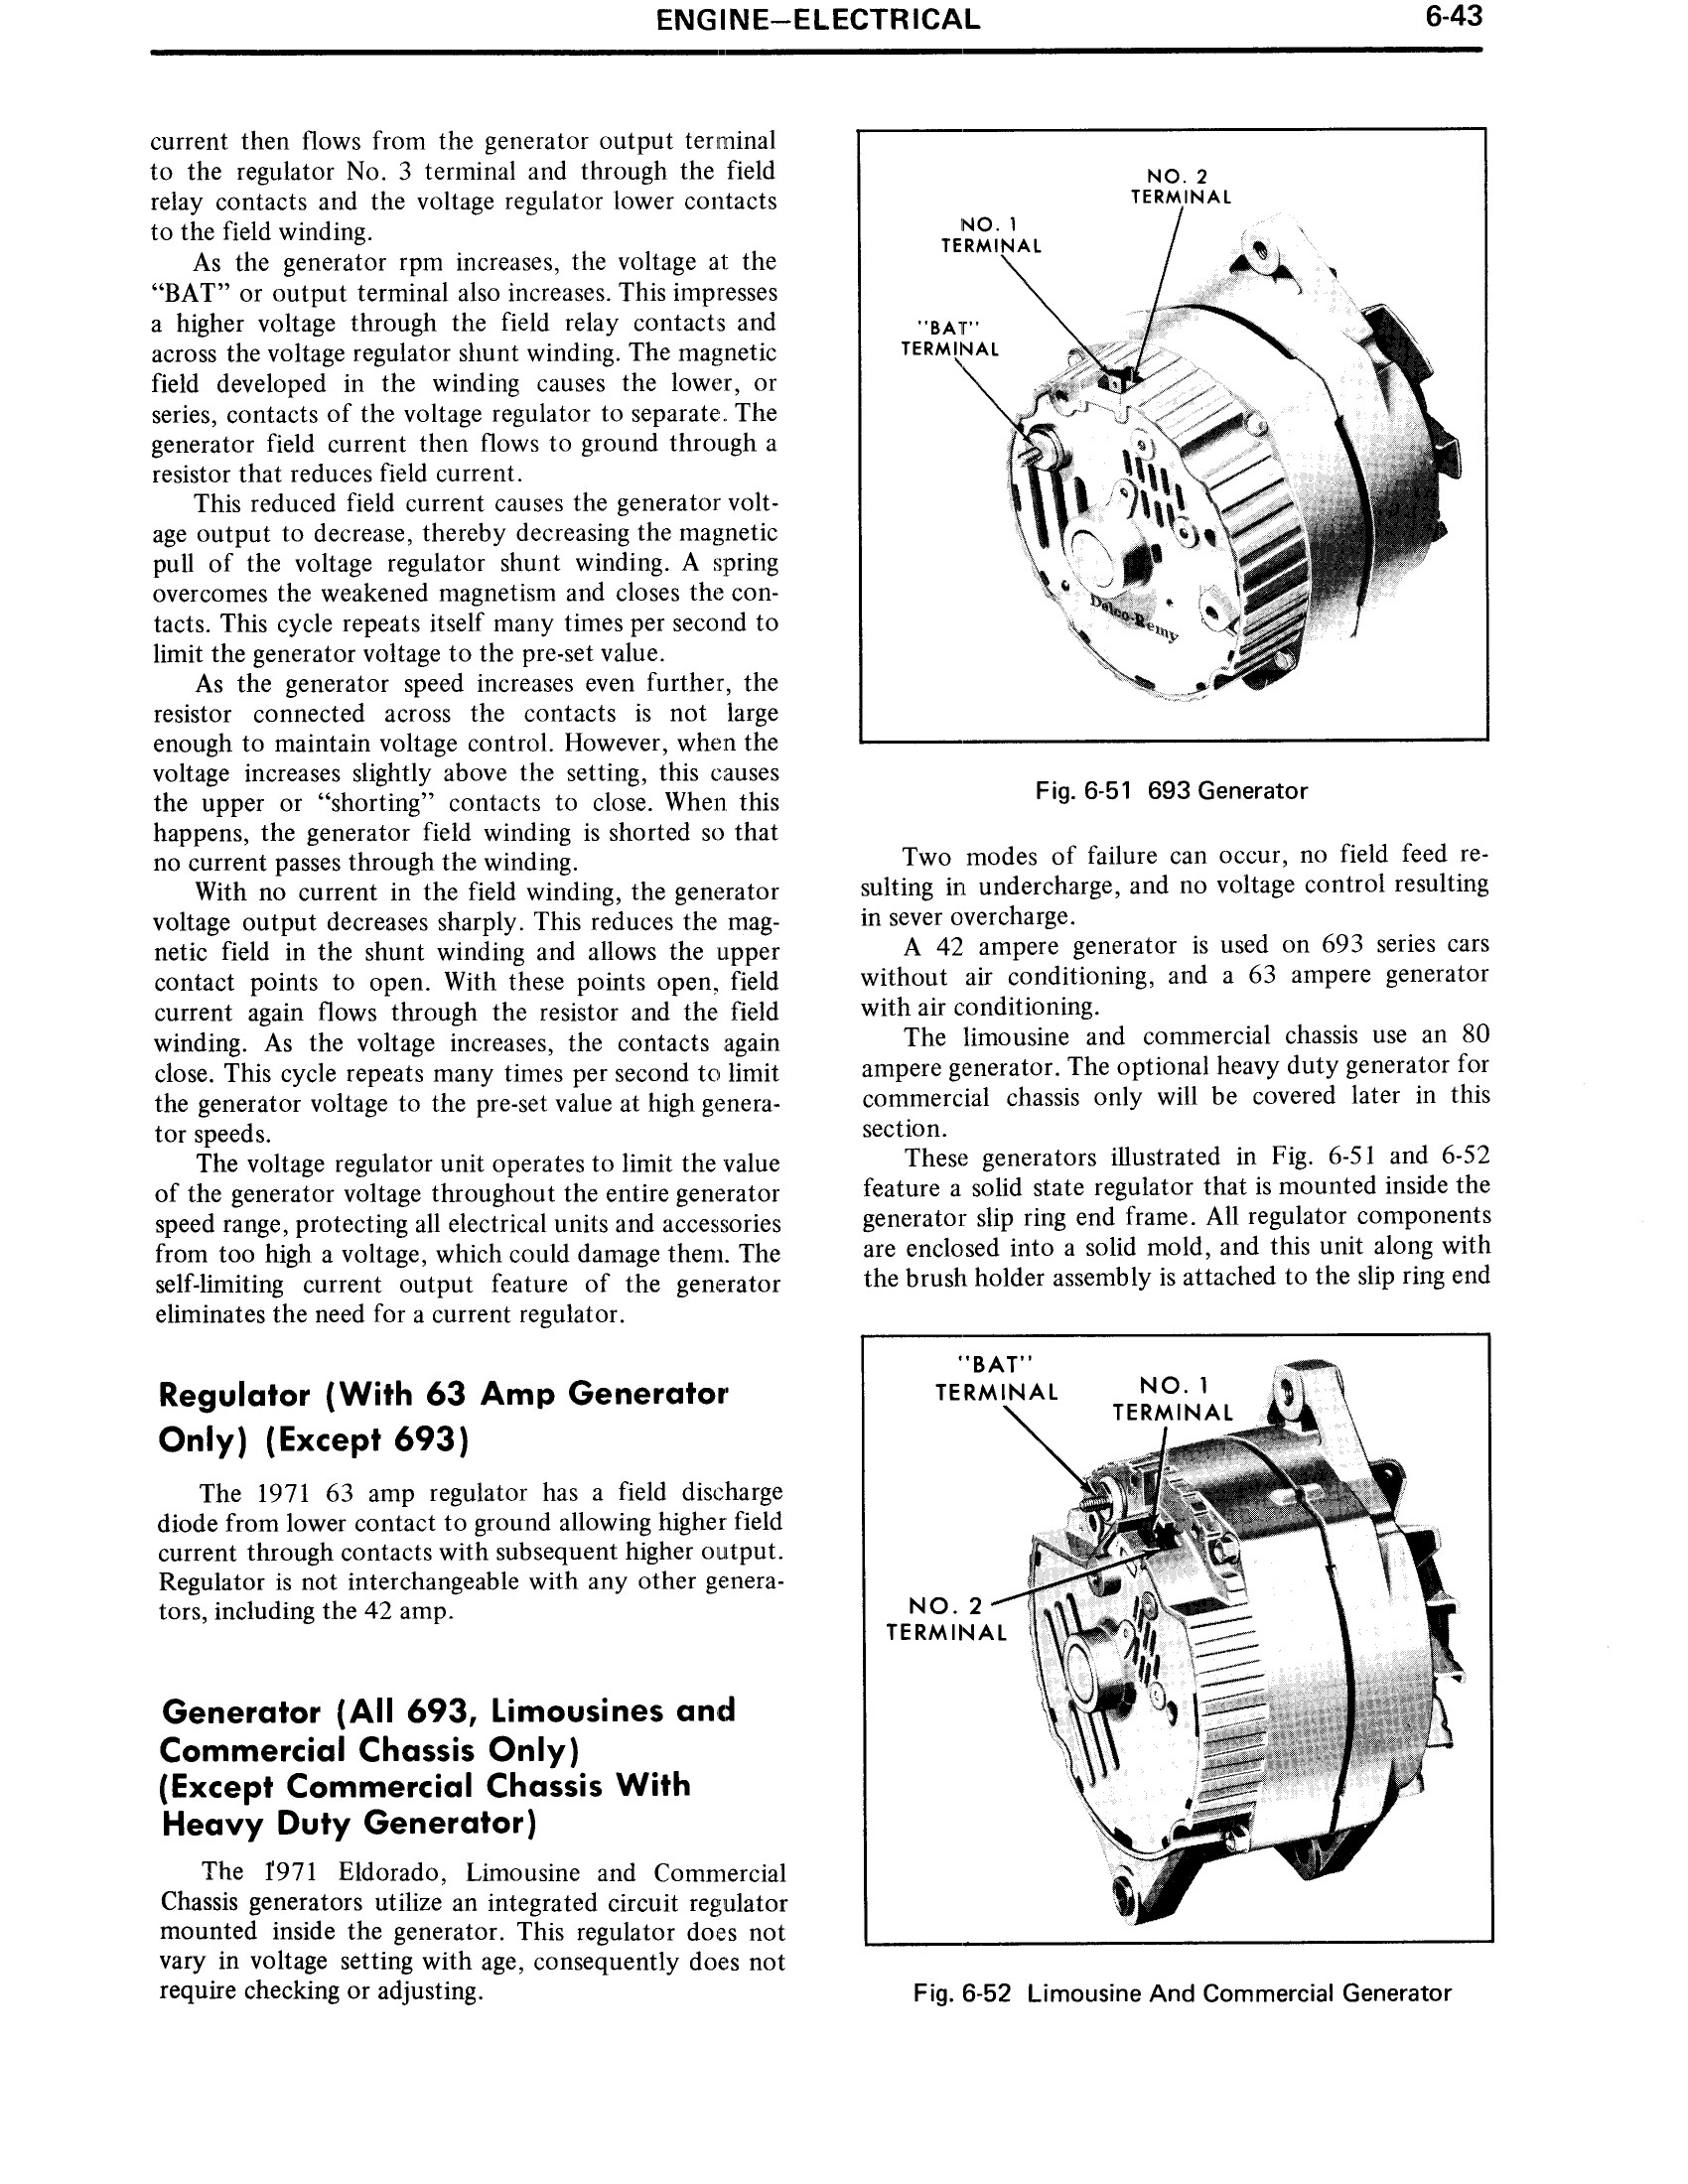 1971 Cadillac Shop Manual- Engine Page 43 of 128